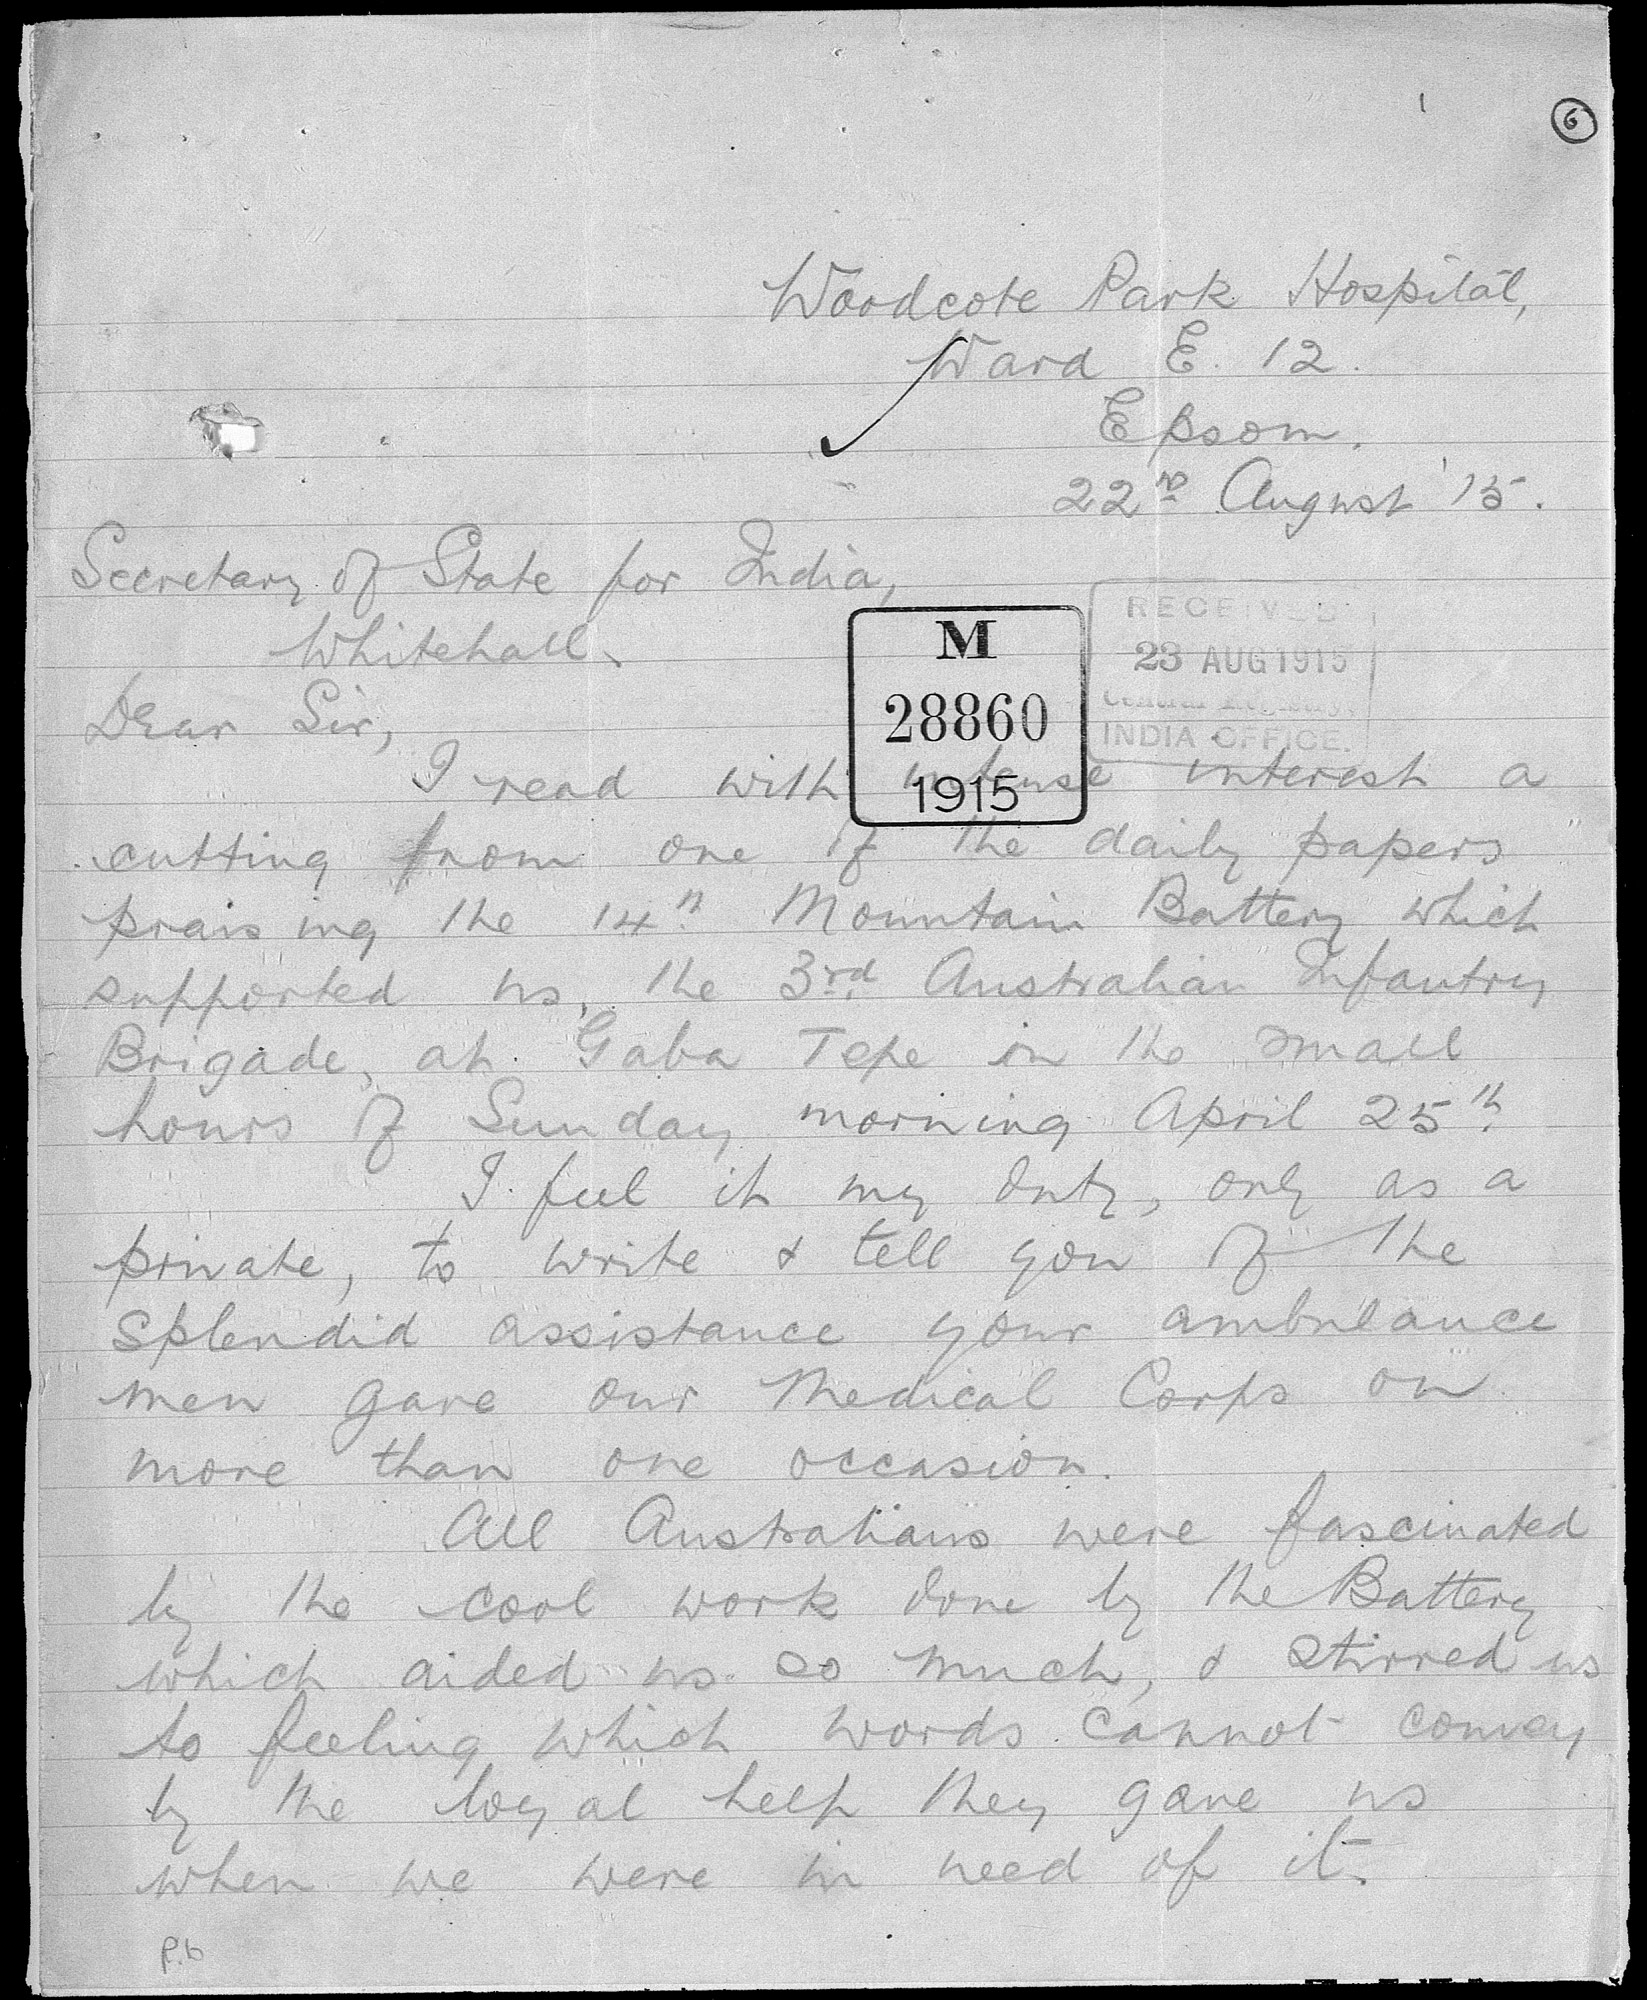 Appreciation of assistance rendered to Australian Medical Corps by Indian ambulance men in Gallipoli